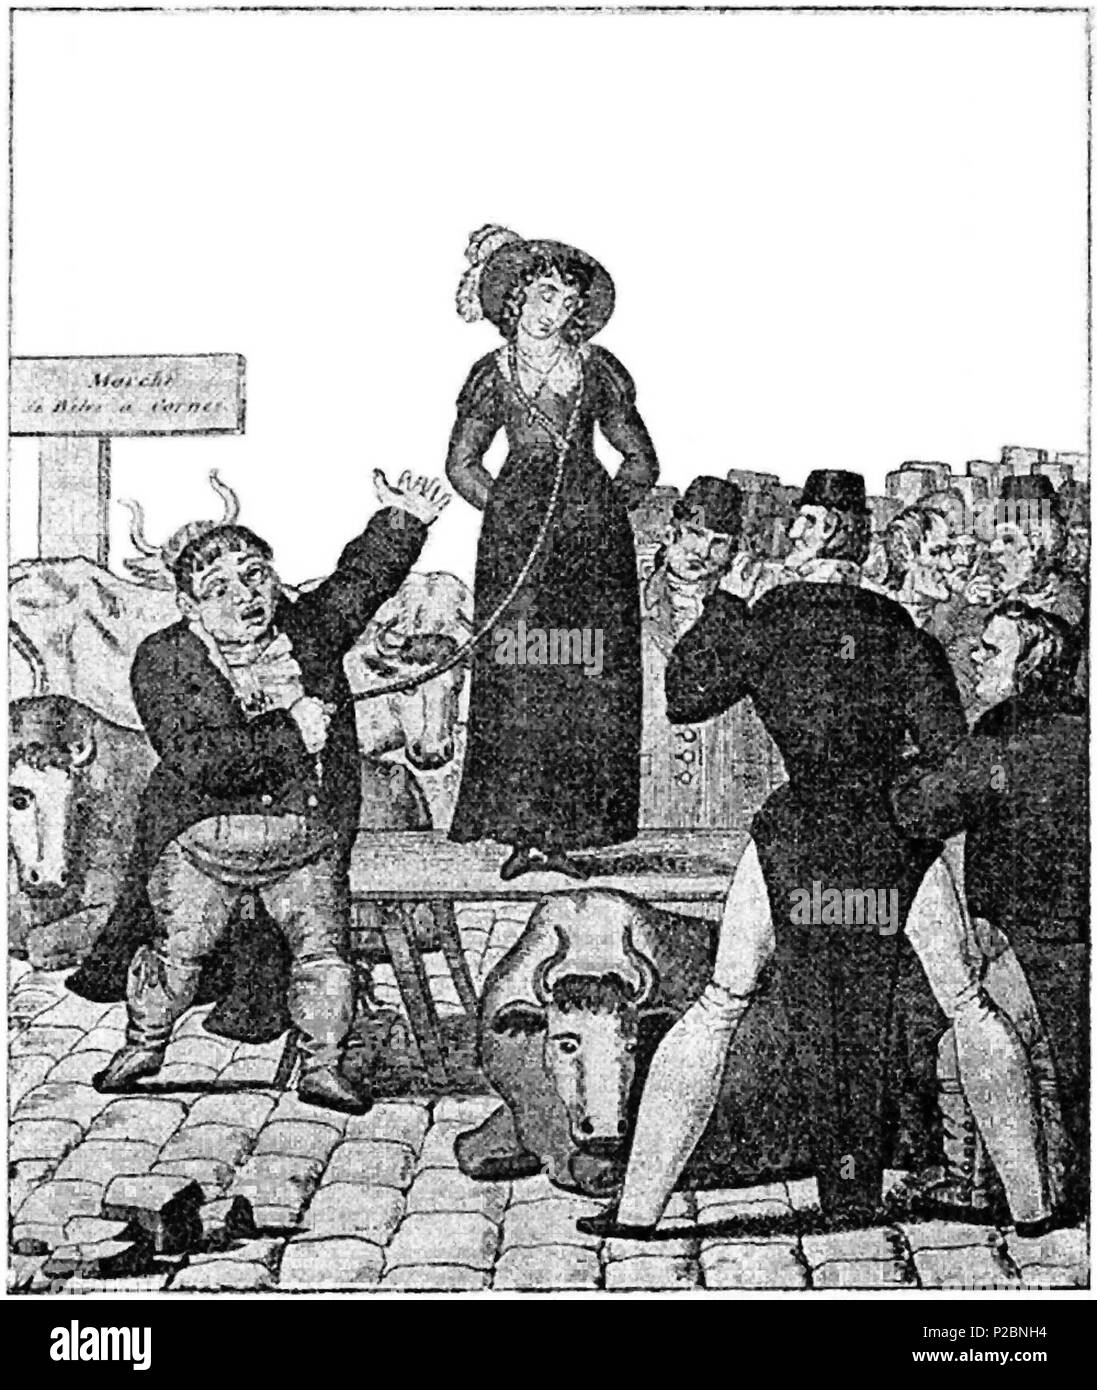 . English: A satirical engraving of the quaint English custom of 'wife-selling', which wasn't quite what it sounds like, but was more a ritual among the lower classes — who couldn't possibly obtain an official full parliamentary divorce, allowing remarriage, given the laws of England as they existed before 1857 — to publicly proclaim a dissolution of marriage (though not one that was really recognized by the authorities of Church and State). This is an 1820 English caricature (even though the sign says 'Marché de Bêtes à Cornes'). Notice how the artist has arranged things so that the cattle's  - Stock Image